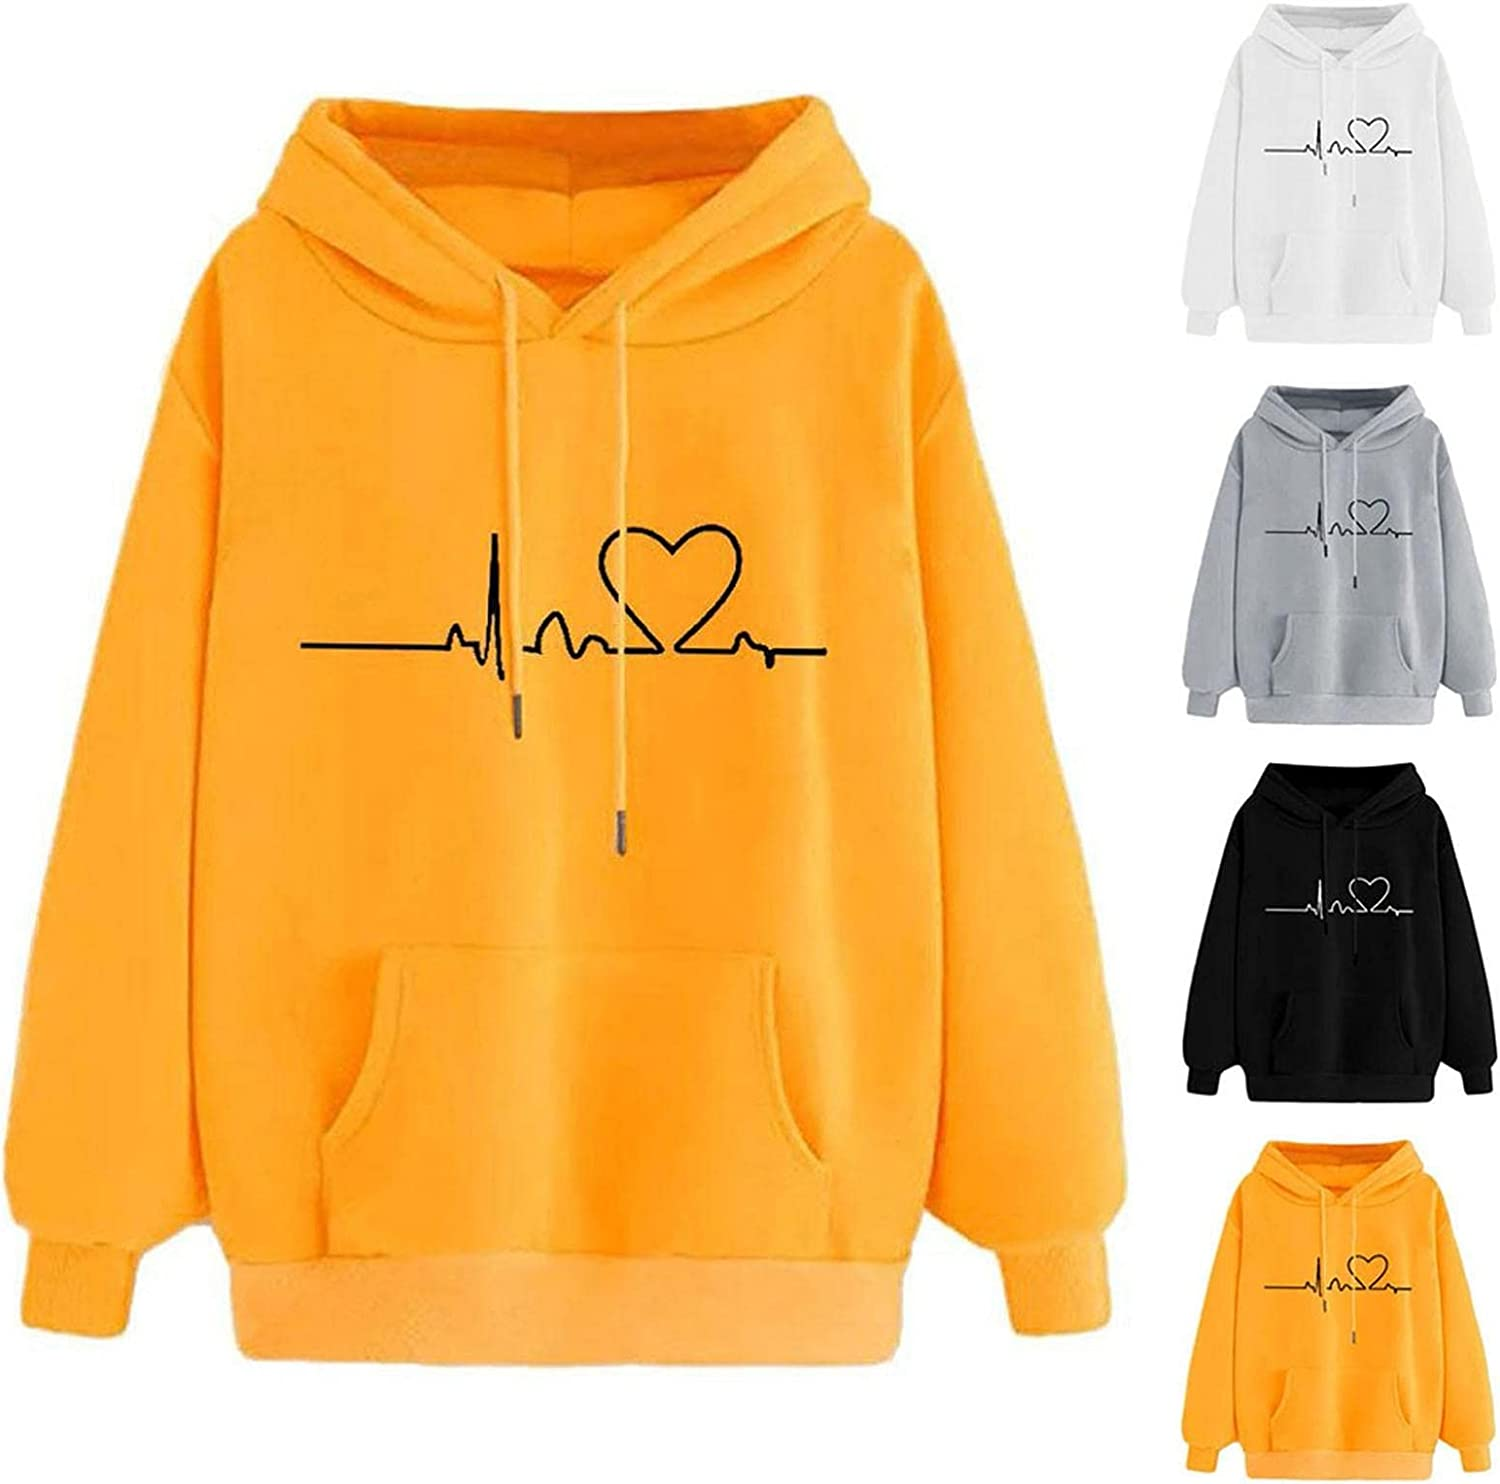 Fudule Cute Hoodies for Teen Girls Heart Graphic Sweatshirts with Pocket Women Lightweight Pullover Casual Loose Blouses